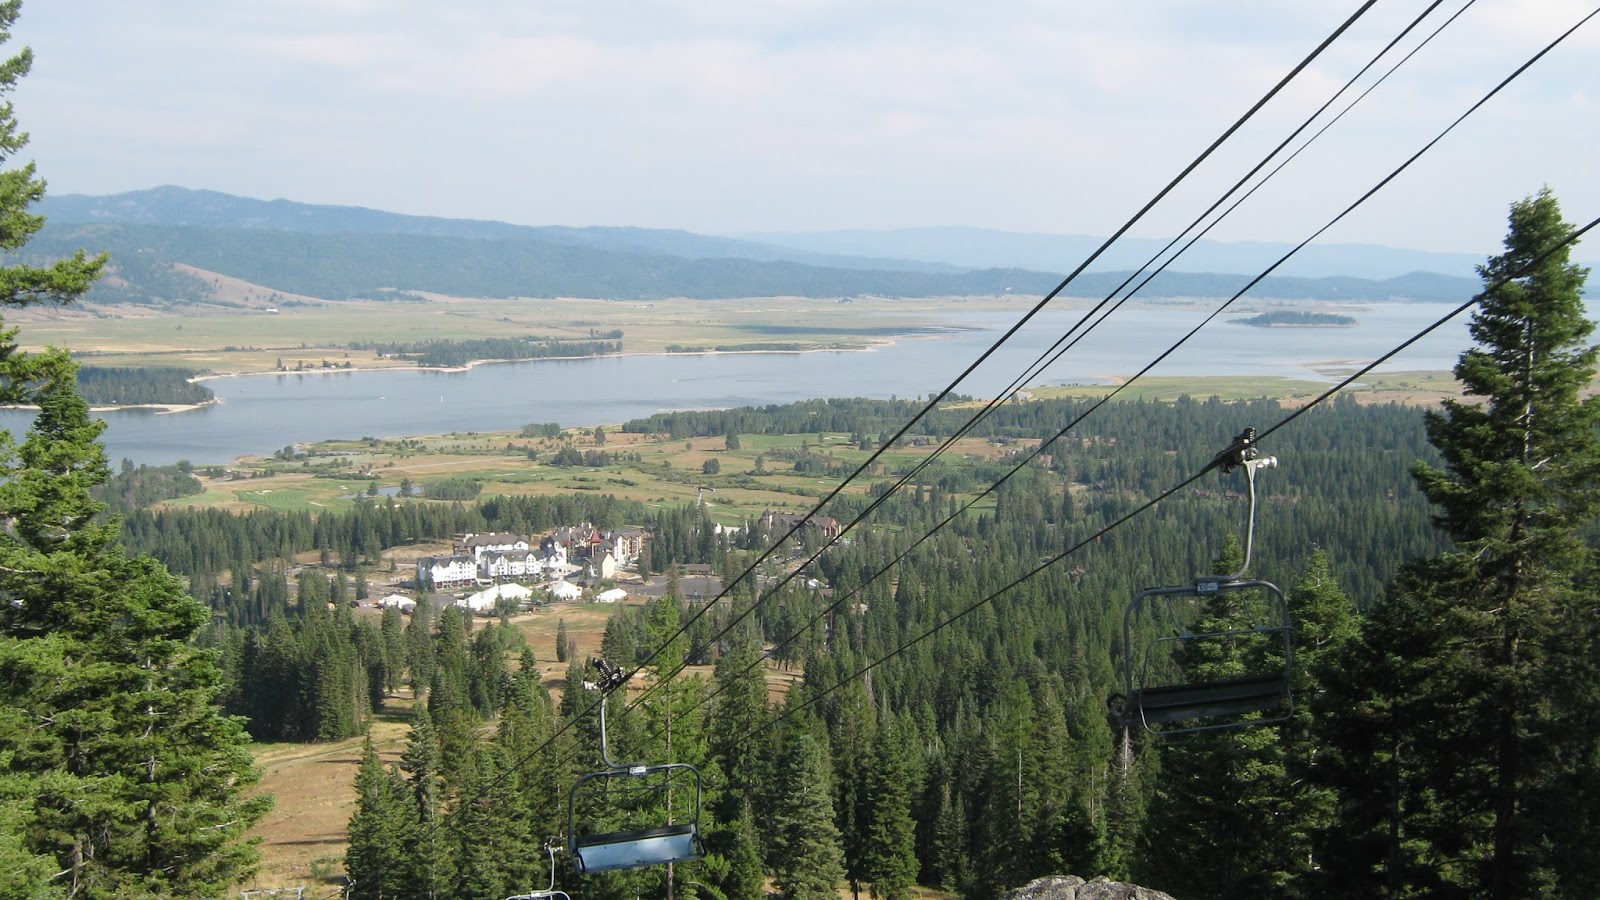 Ziplining across the usa saturday august 17 tamarack resort and